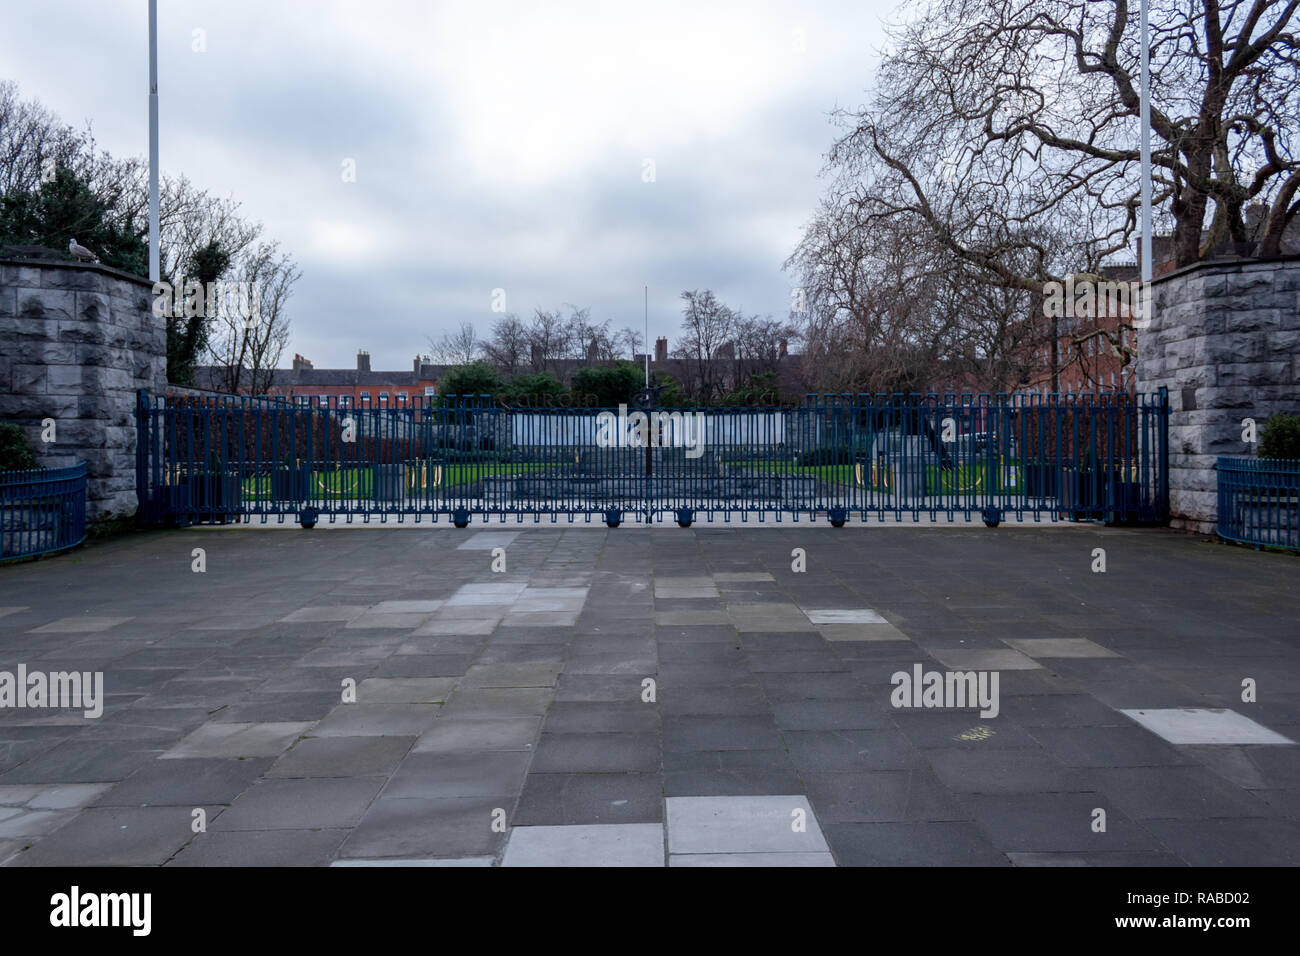 An image of the Garden of Remembrance in Dublin City which remembers those who died in the name of the Irish Republic Stock Photo